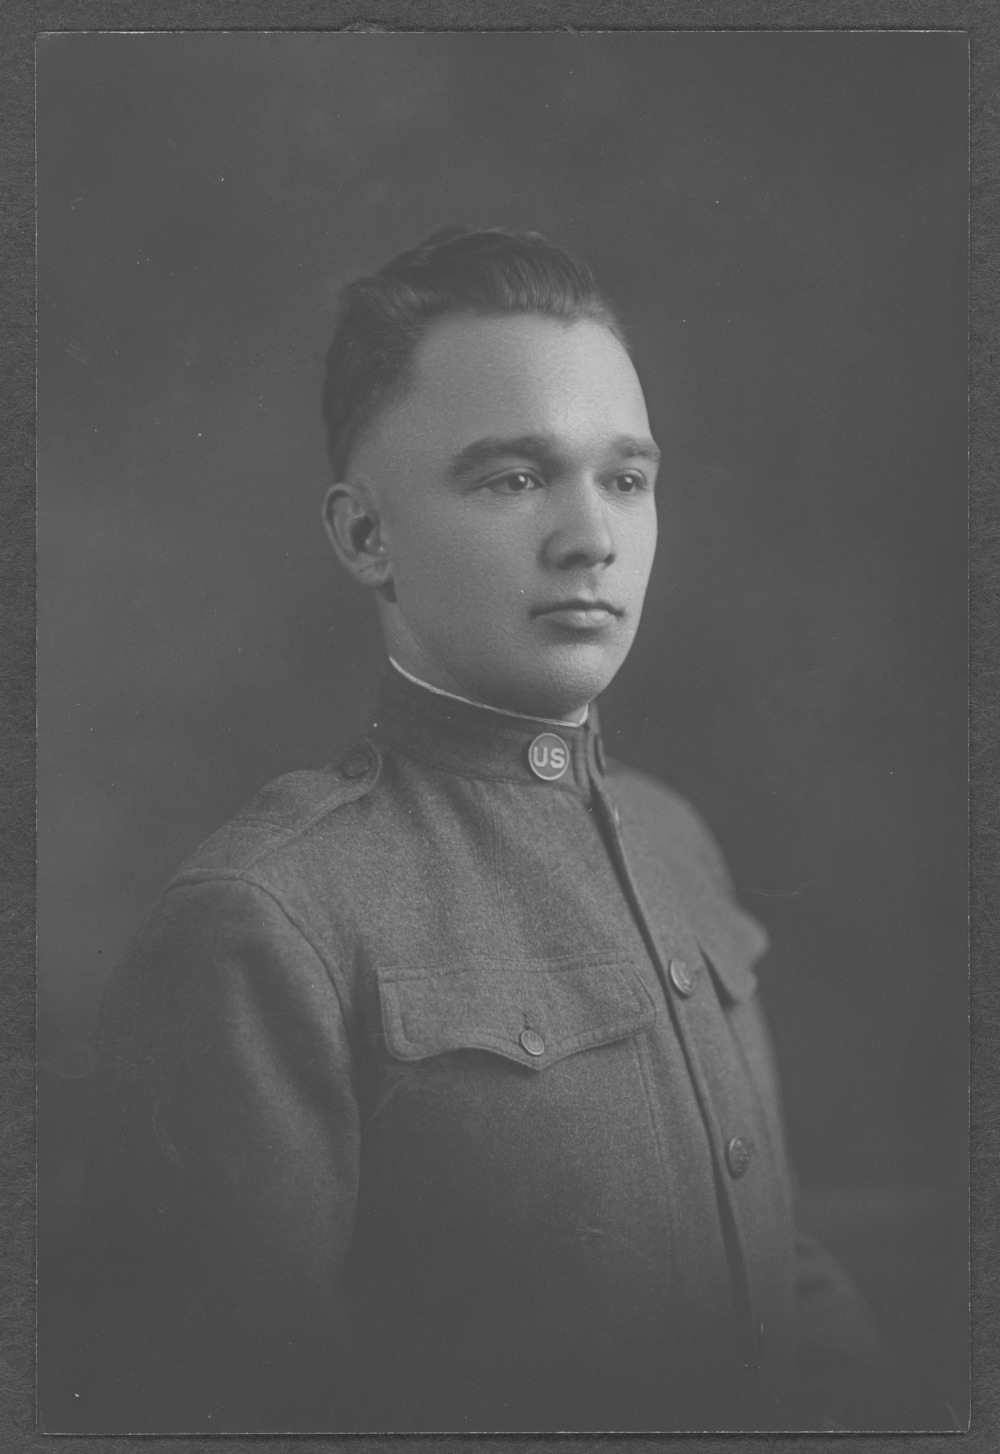 Arthur Strange Tisdale, World War I soldier - 1